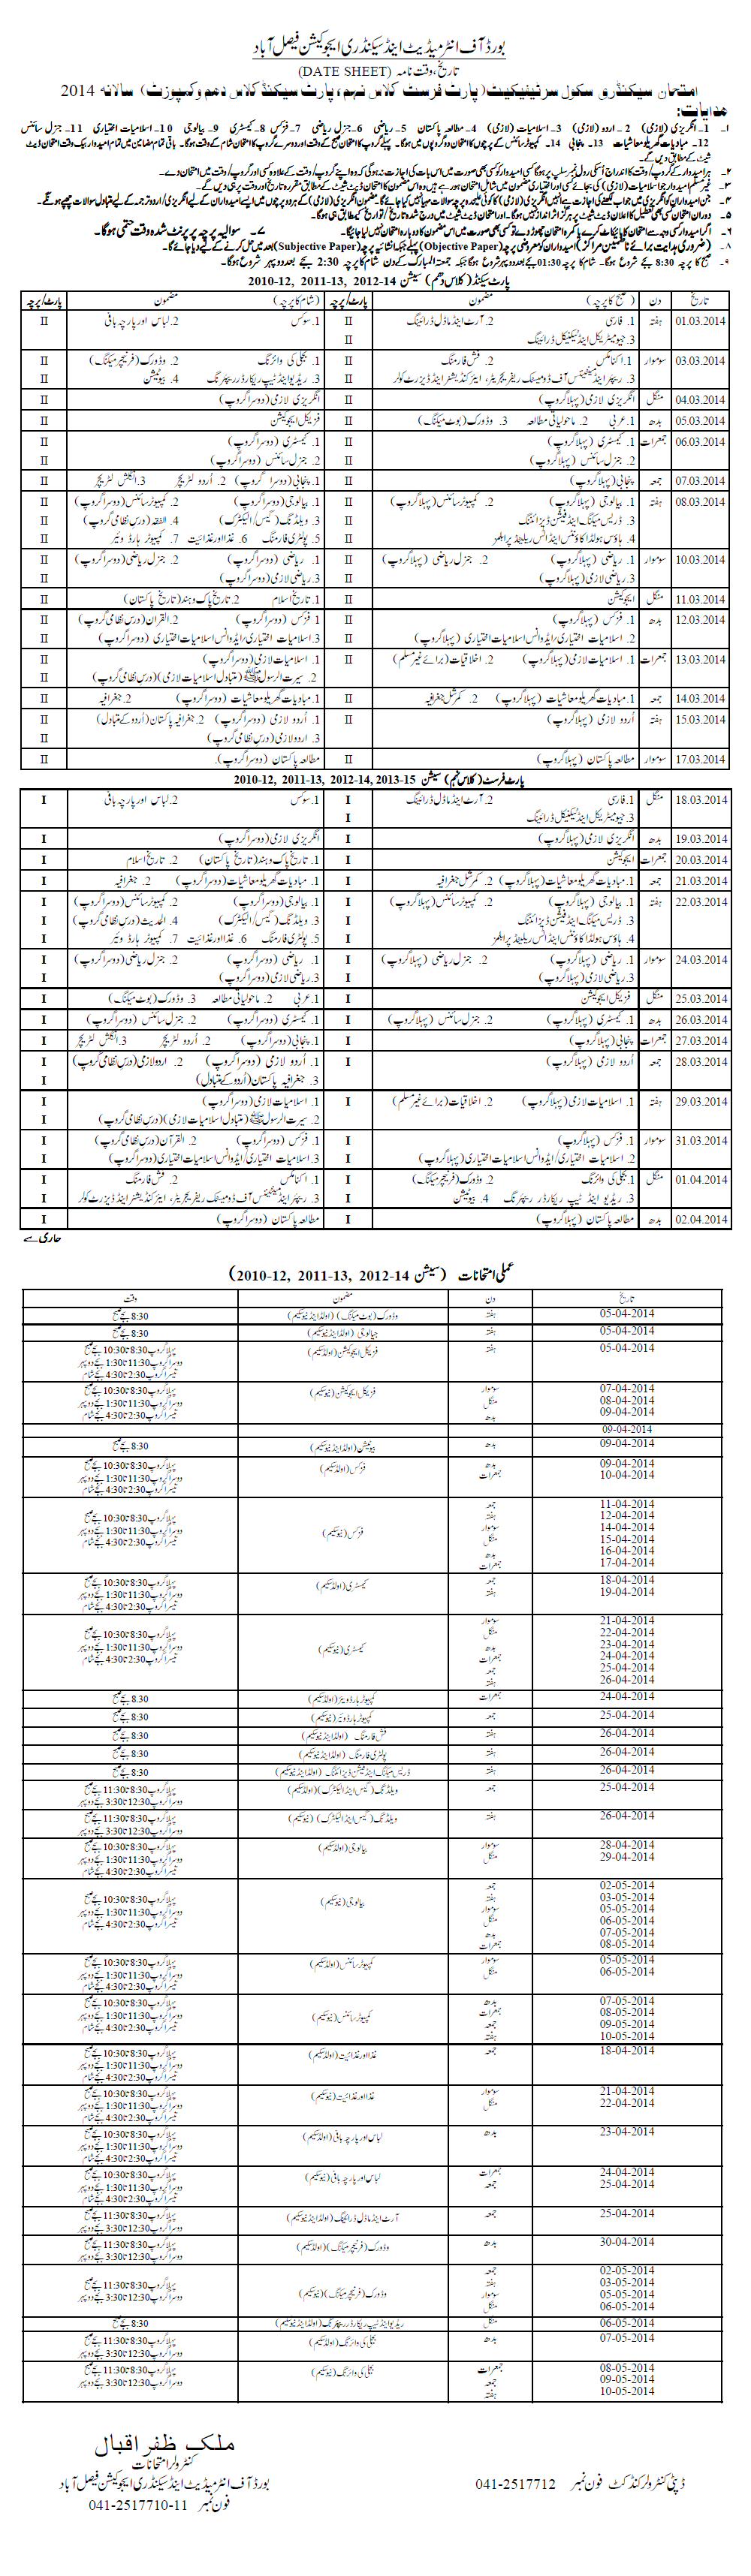 BISE Faisalabad Board Matric 9th, 10th Class Date Sheet 2014